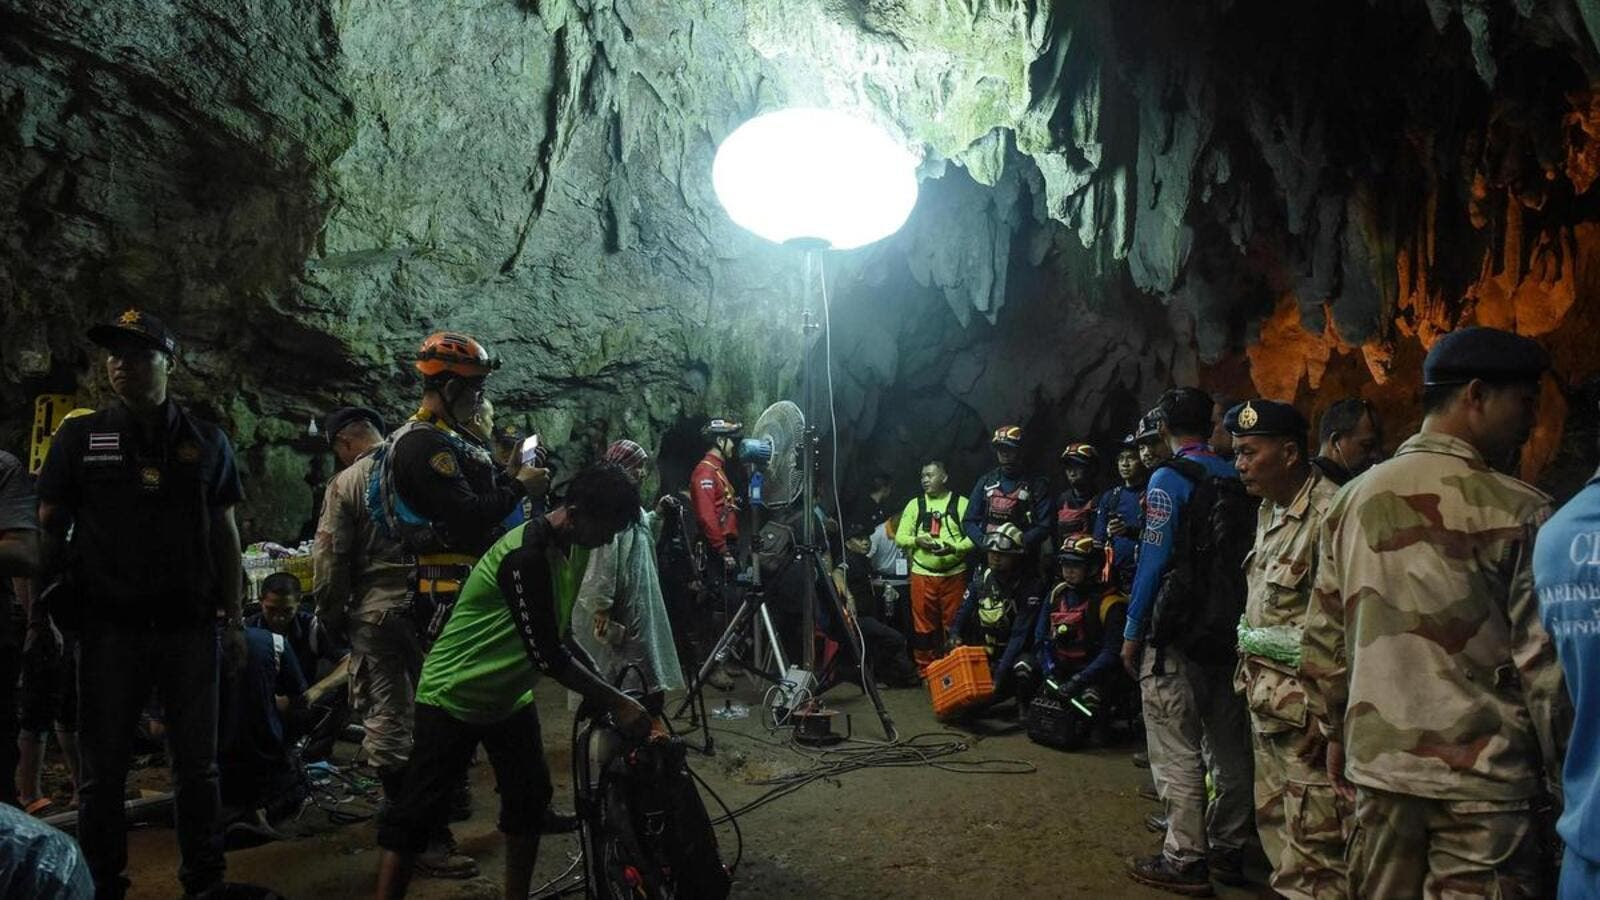 Thai rescue personnel at the entrance of Tham Luang cave in Chiang Rai province. (AFP/ File Photo)